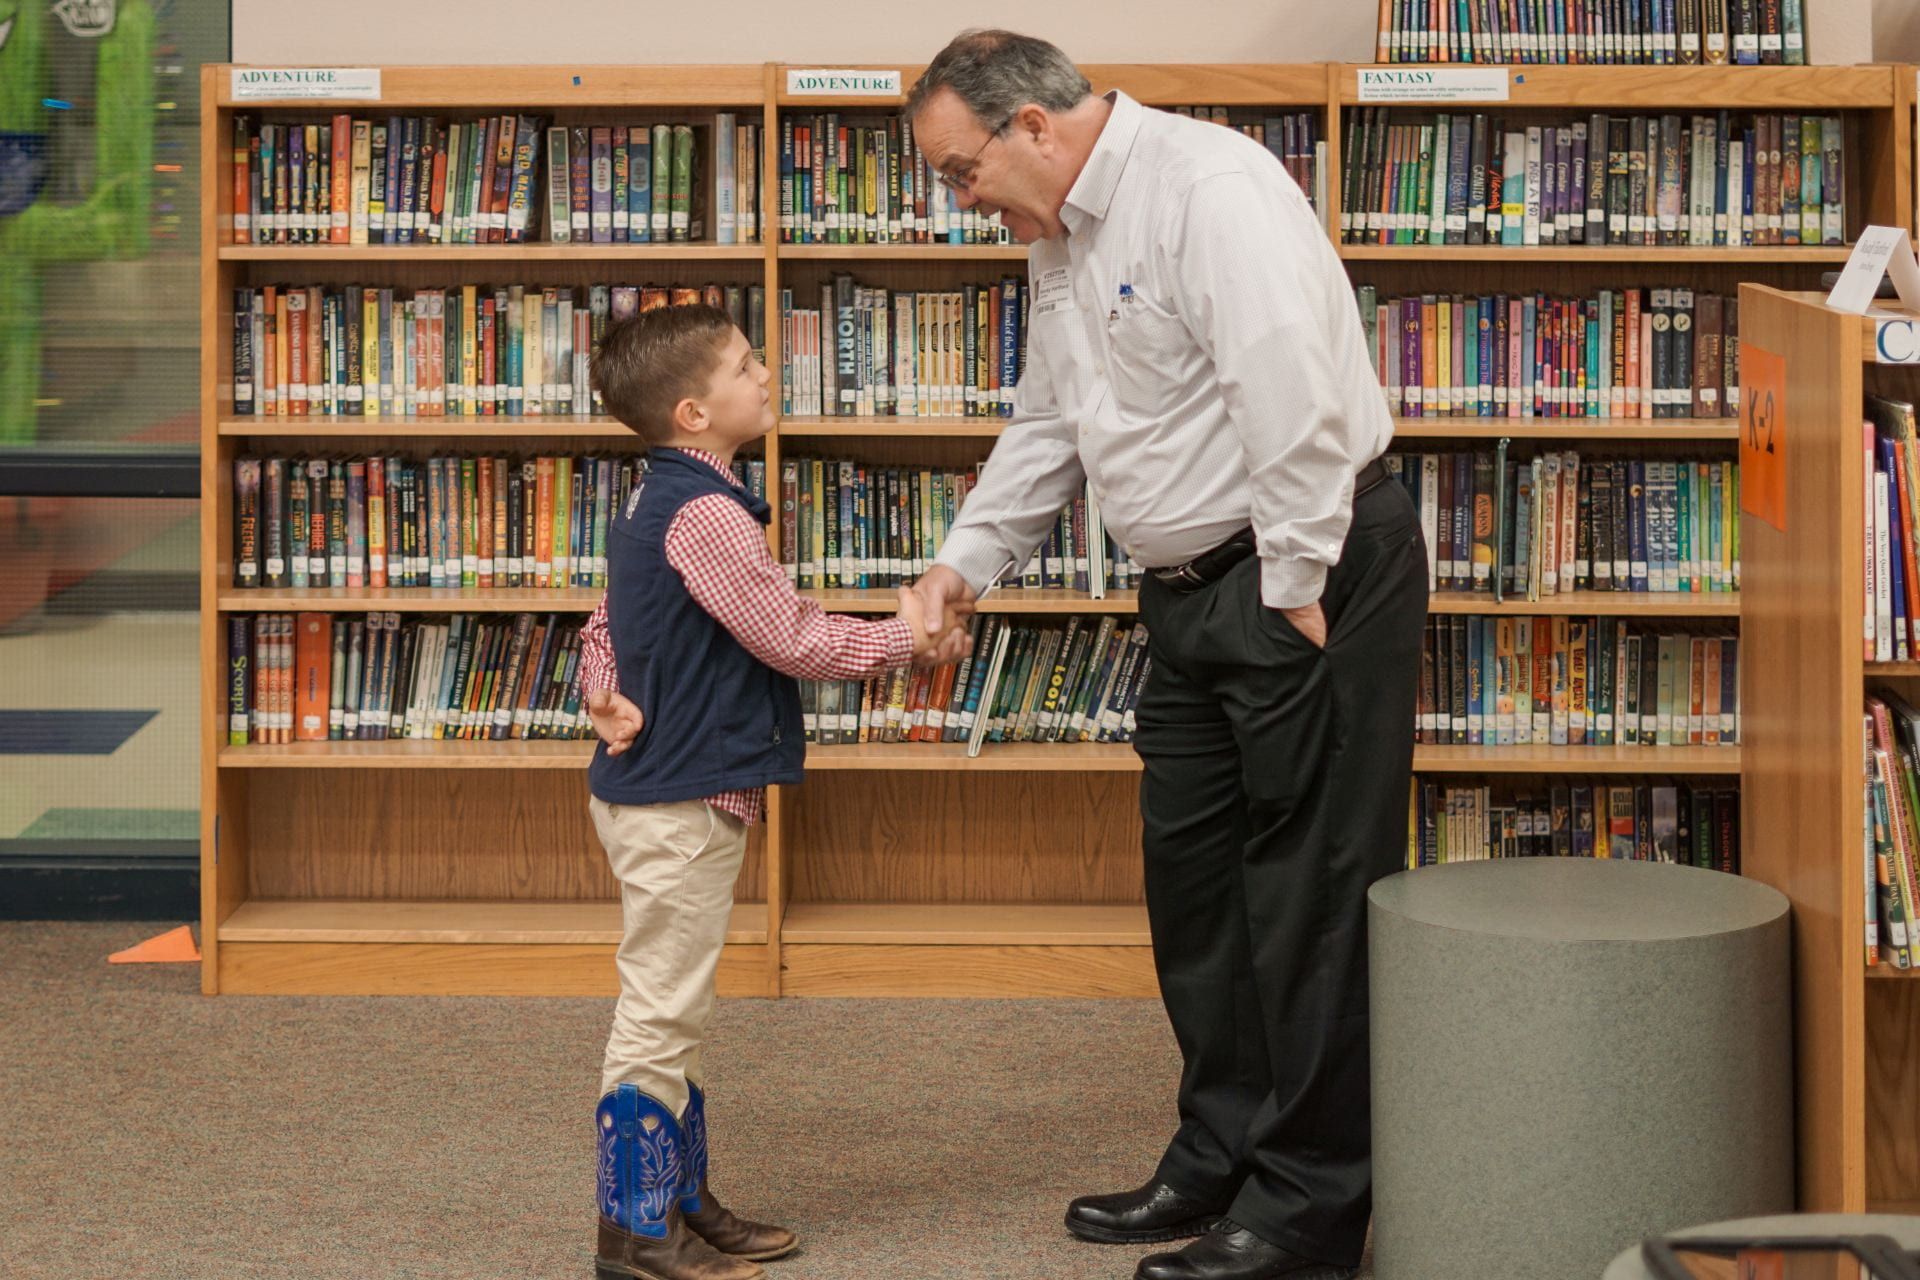 Community volunteer shaking hands with a student in a library